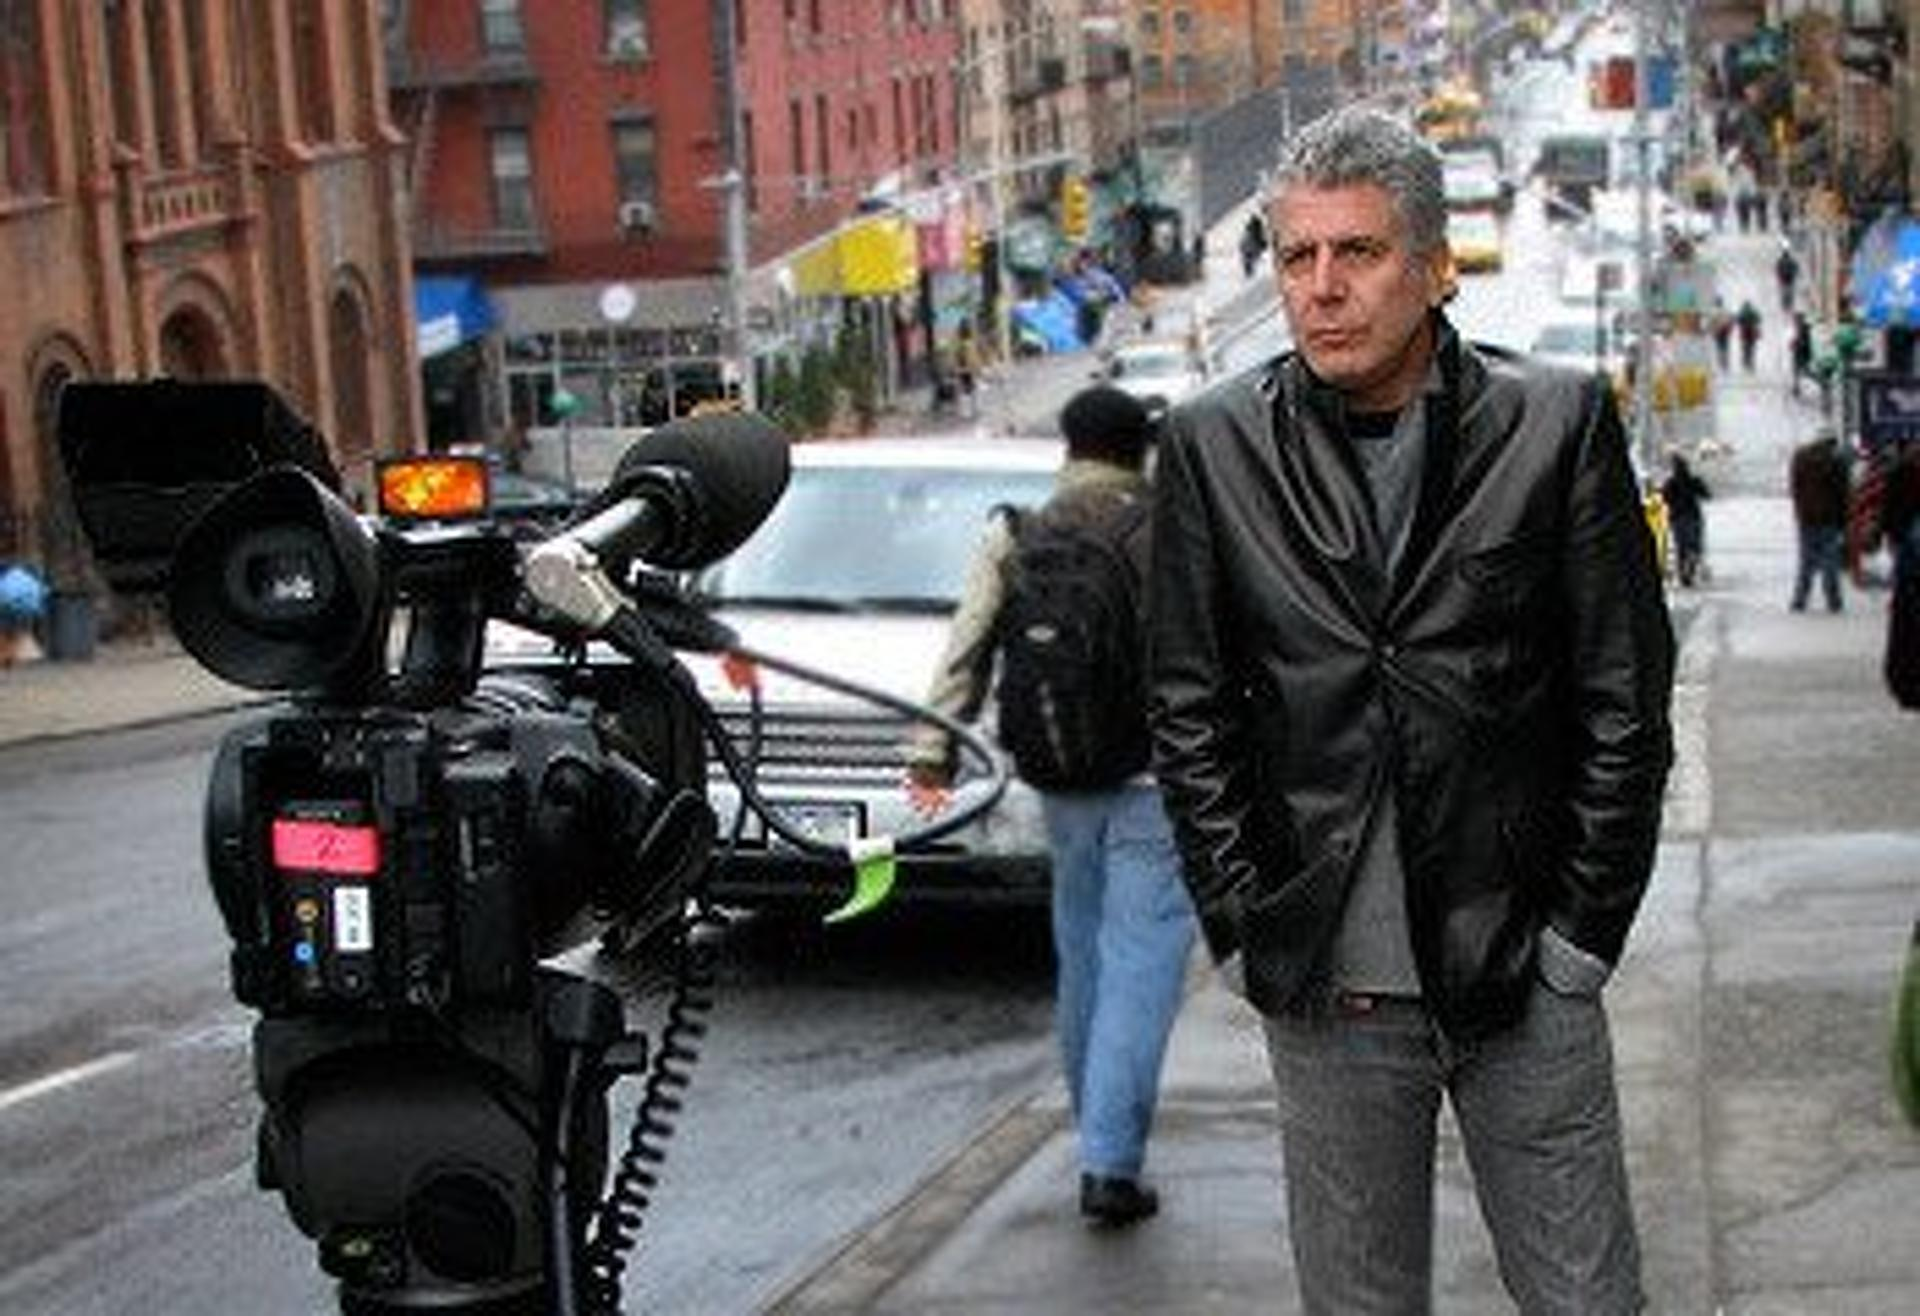 bb9a3c0a Anthony Bourdain: No Reservations (S05E14): Down on the Street Summary -  Season 5 Episode 14 Guide